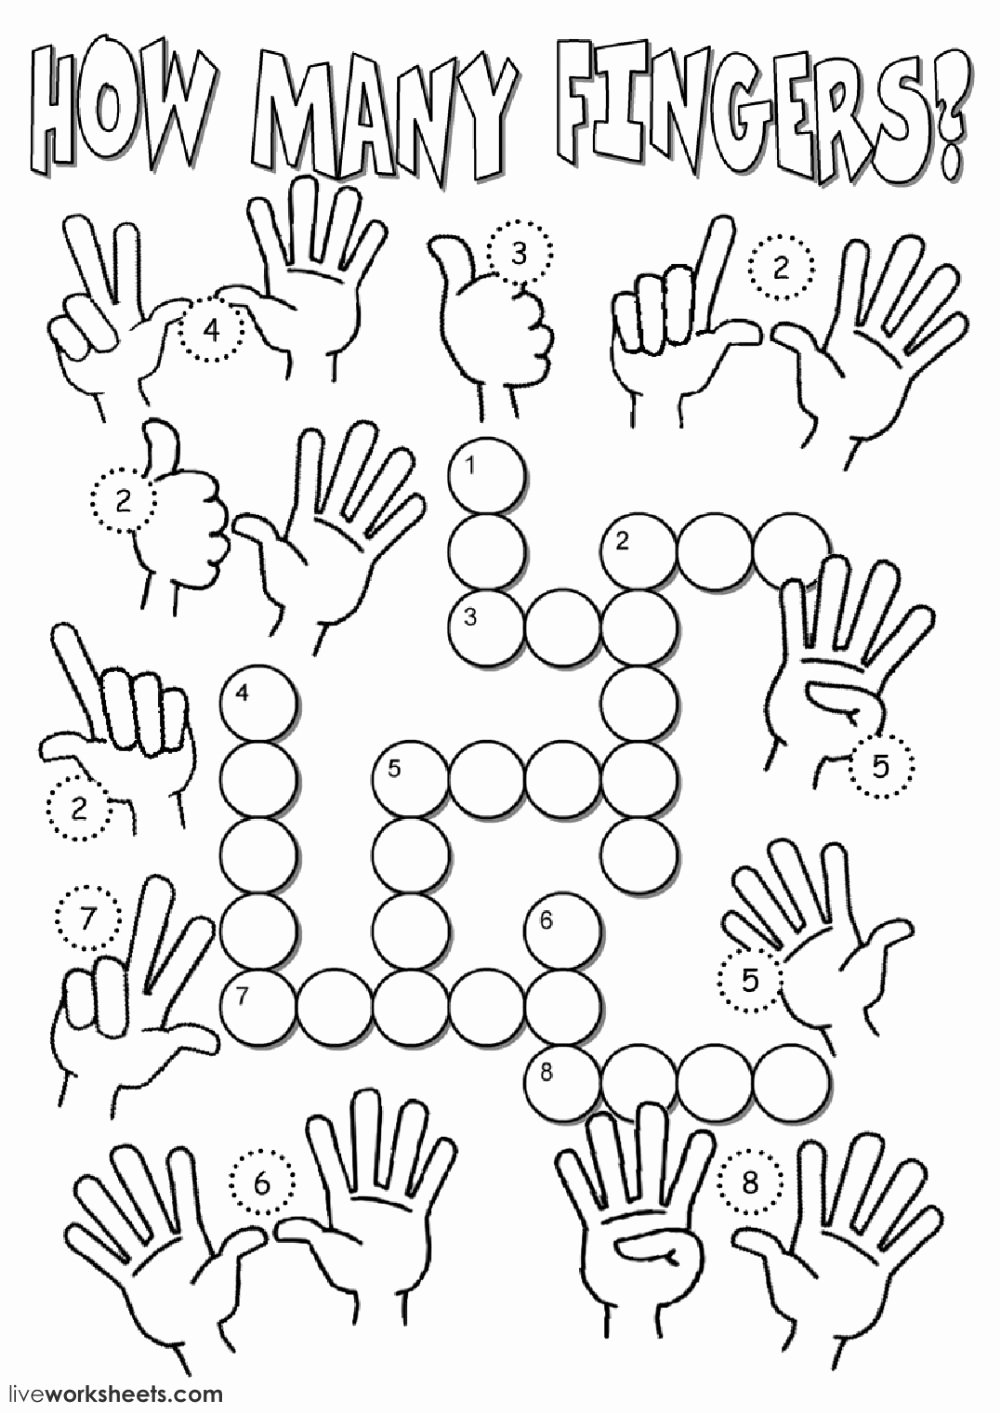 Dhivehi Worksheets for Preschoolers Printable Many Fingers Interactive Worksheet Dhivehi Worksheets for